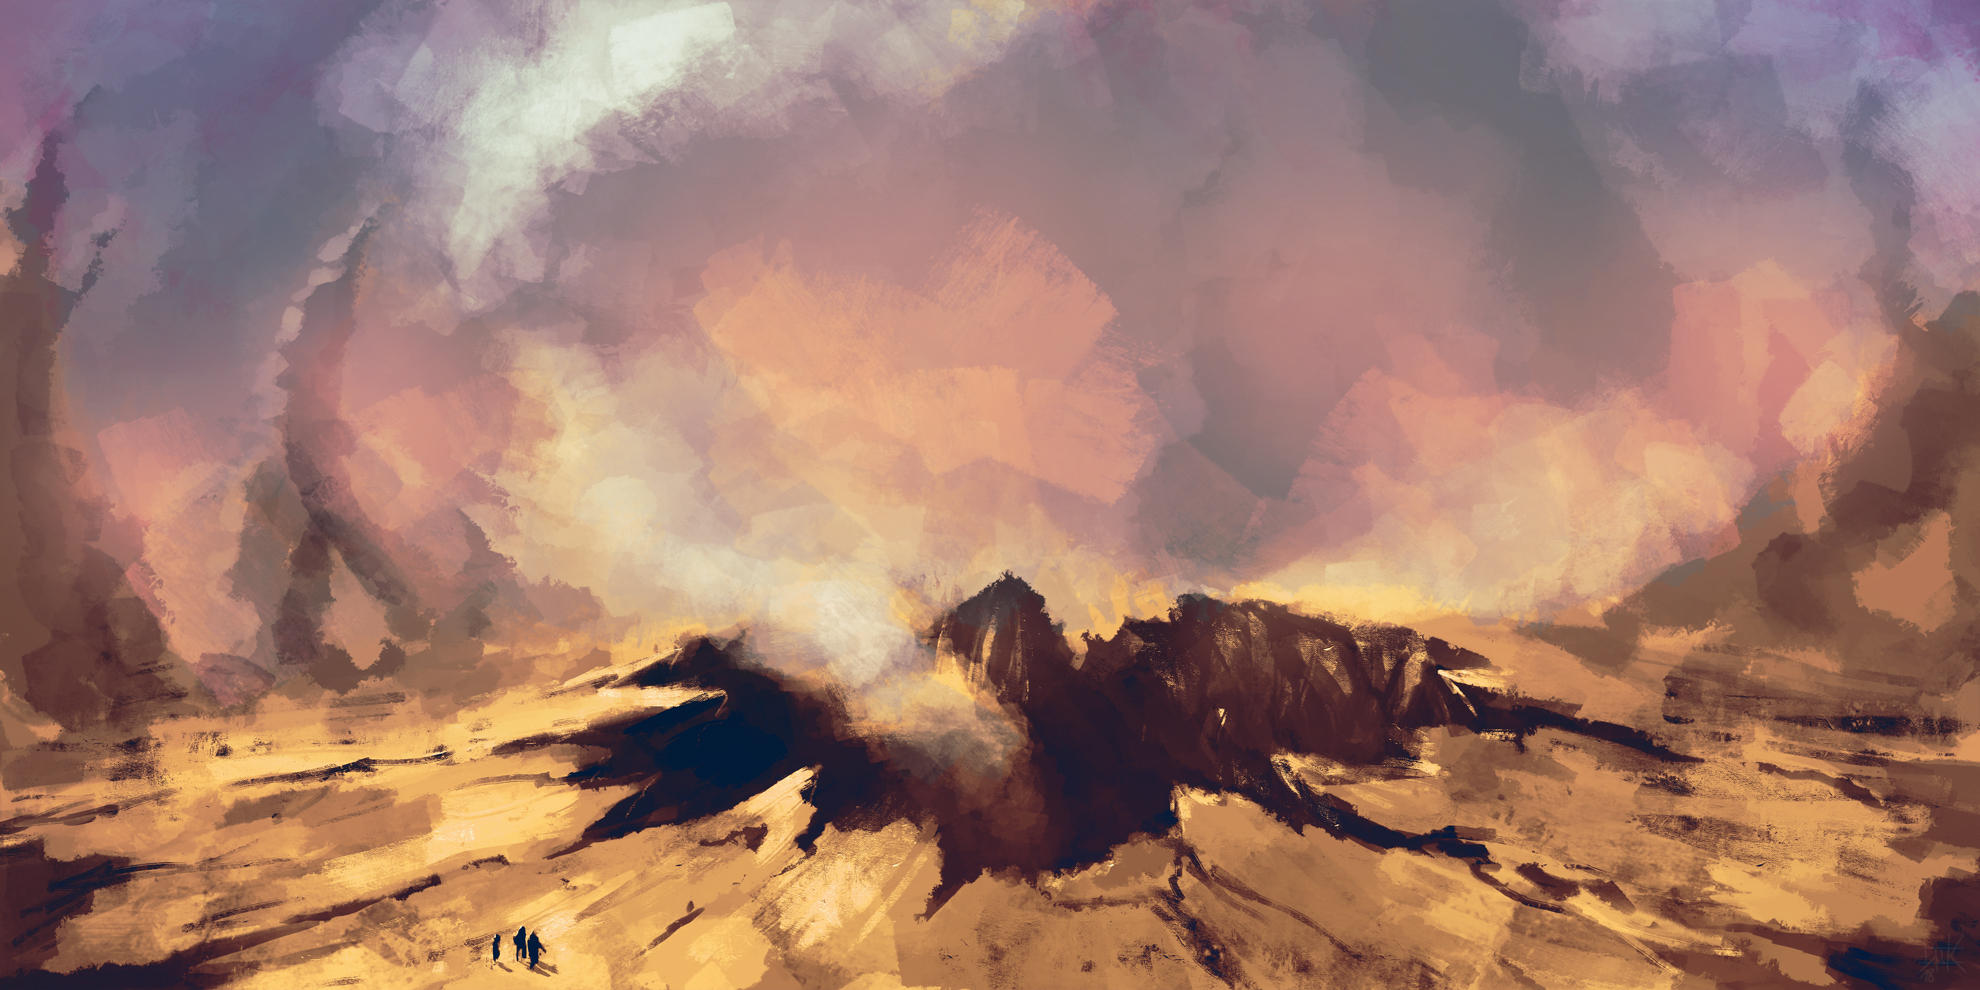 Crater by cubehero